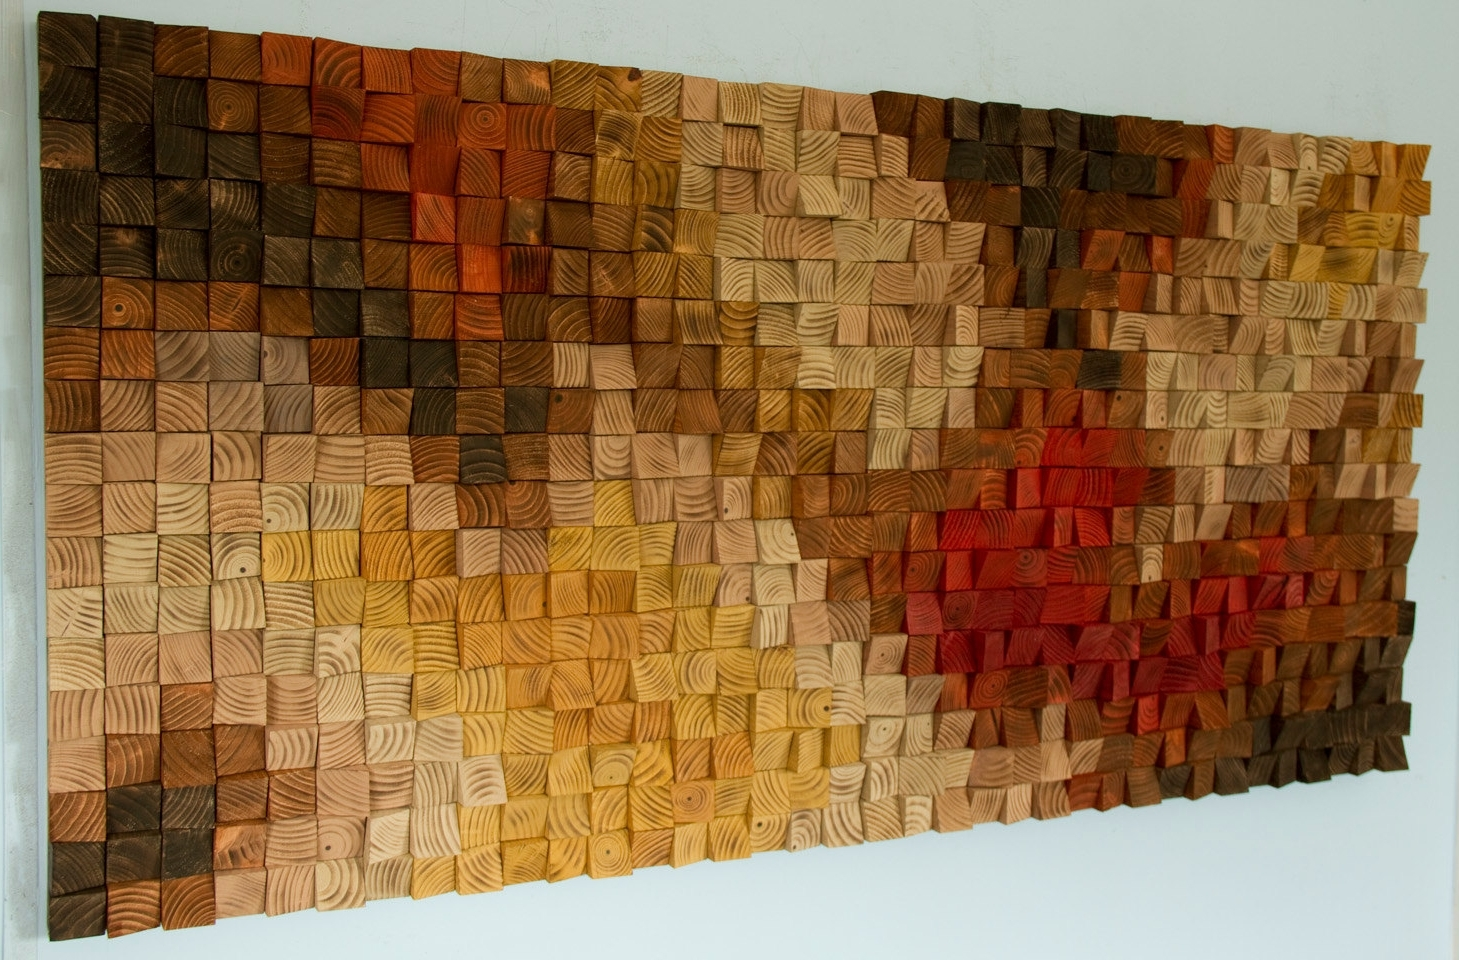 Popular Sculpture Abstract Wall Art Regarding Large Rustic Wood Wall Art, Wood Wall Sculpture, Abstract Painting (View 6 of 15)